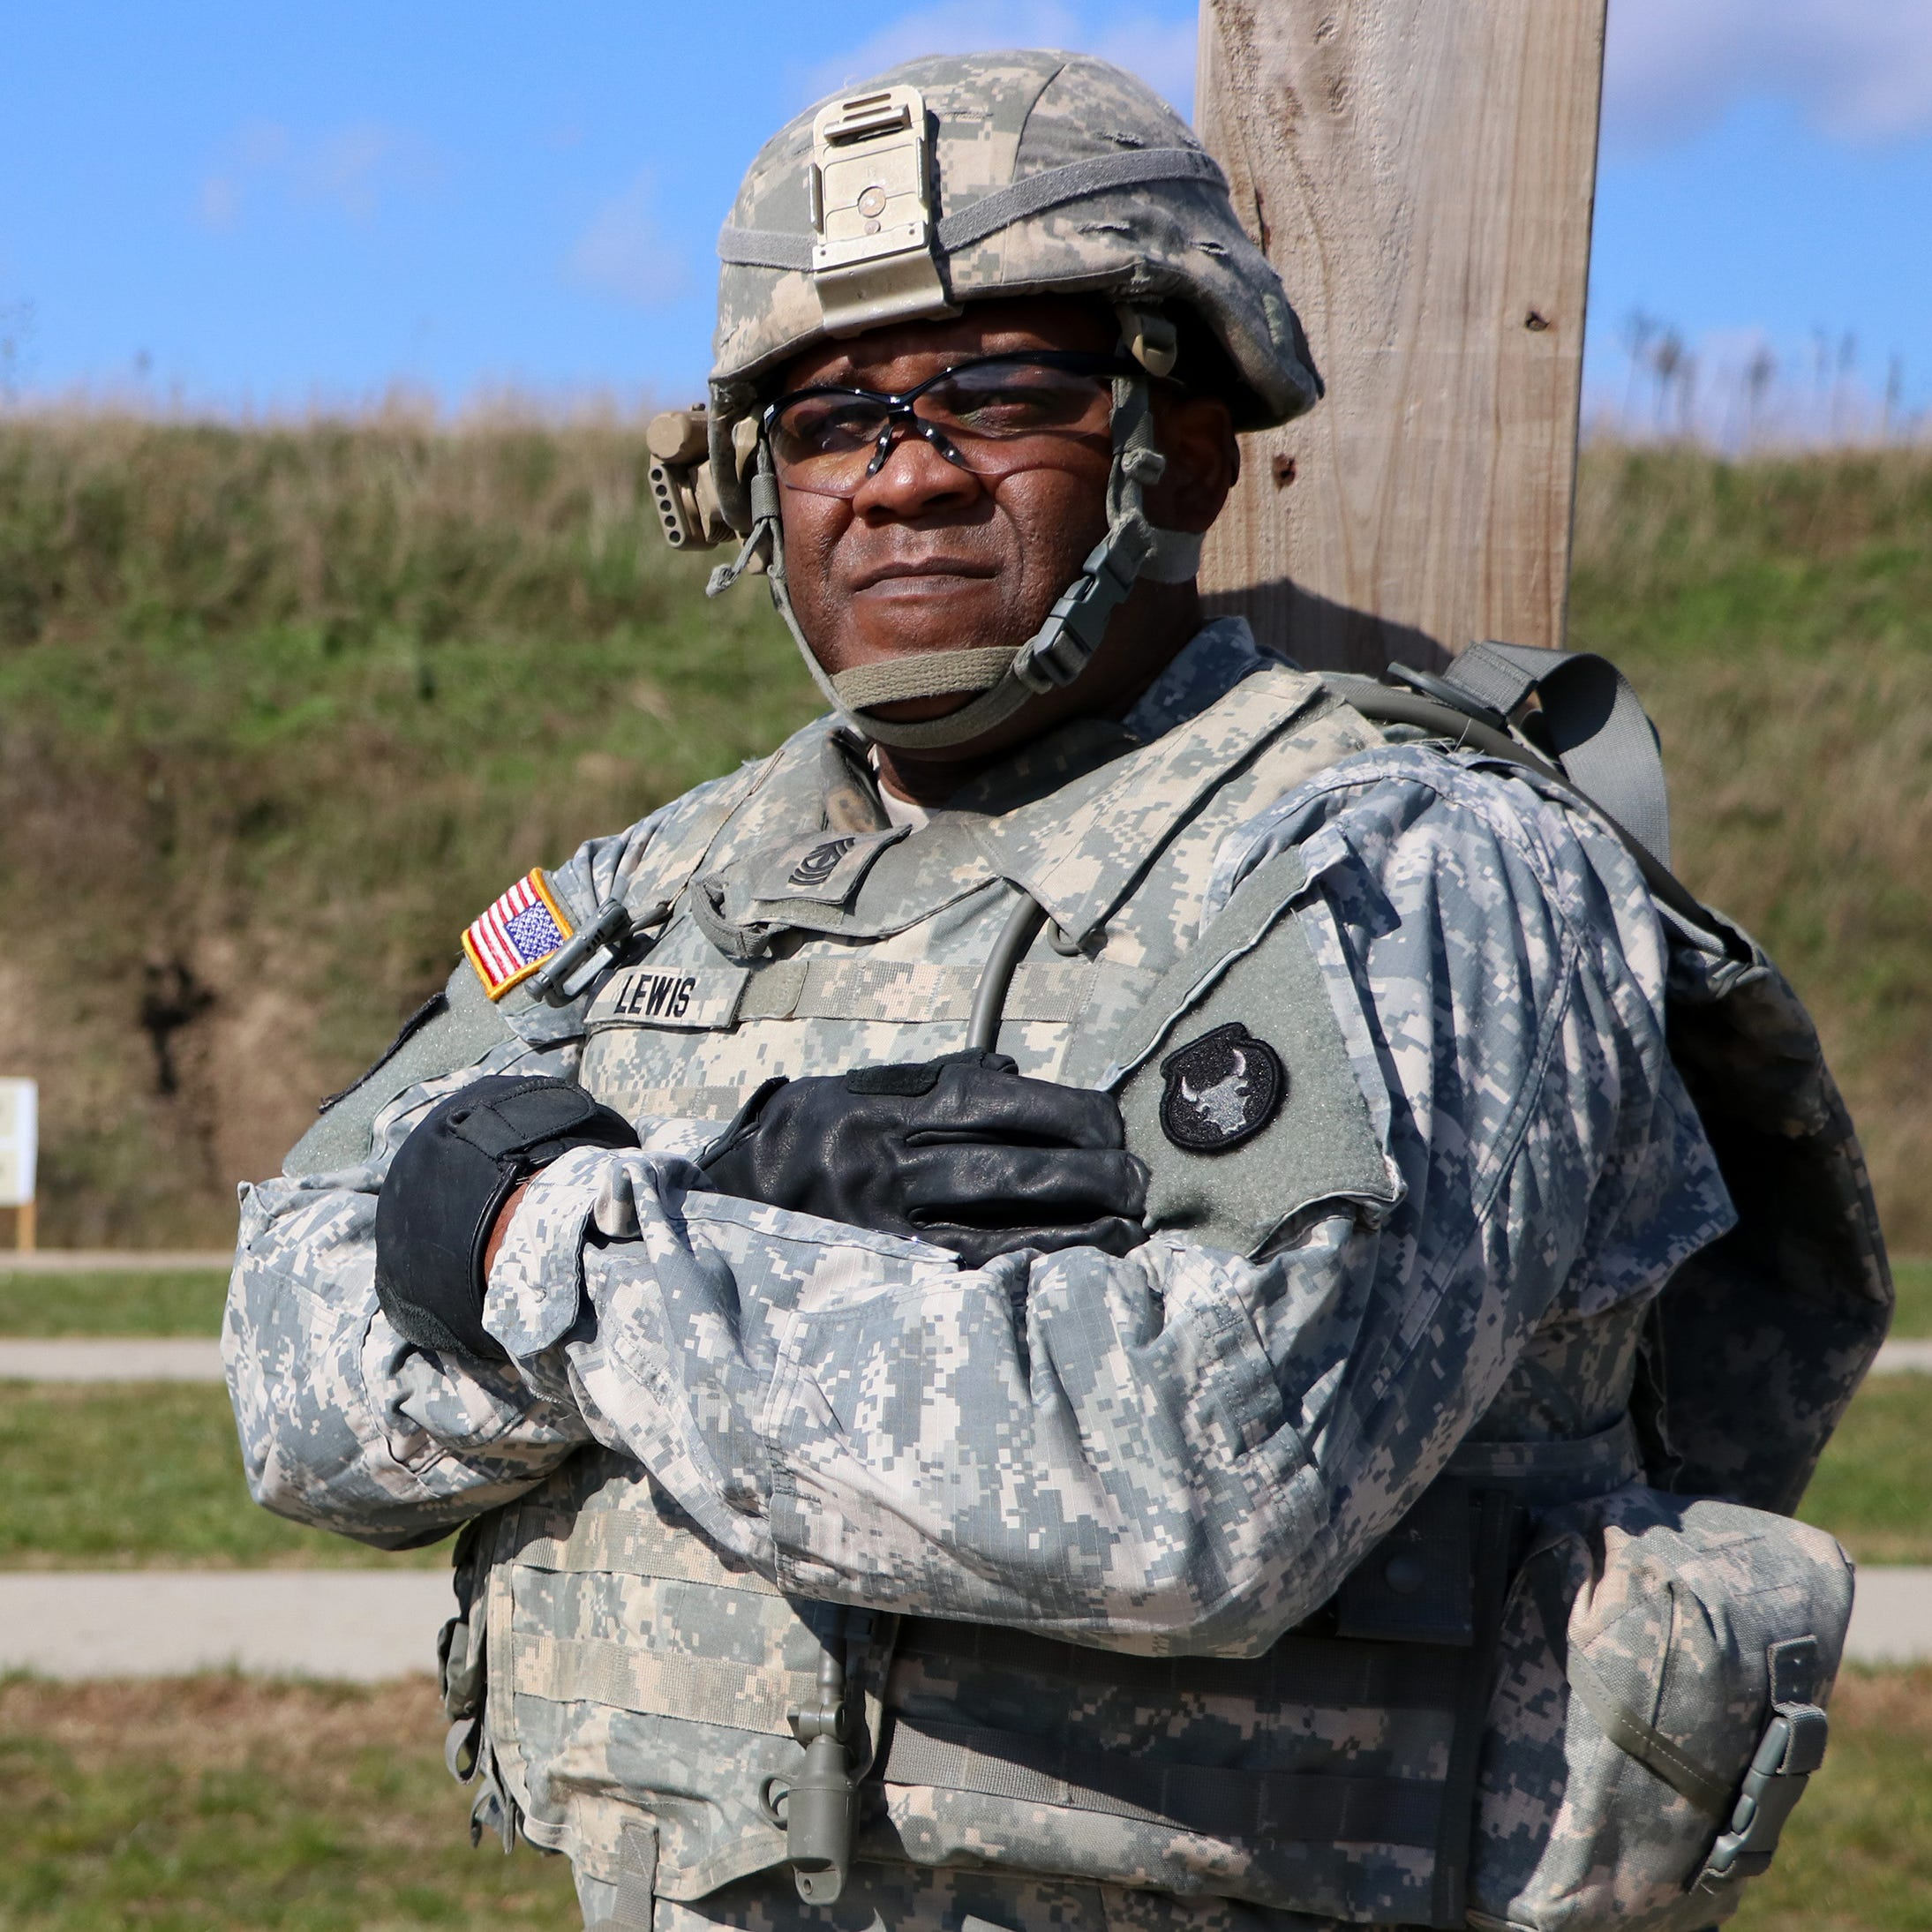 Iowa National Guardsman makes history as the first African-American to become sergeant major